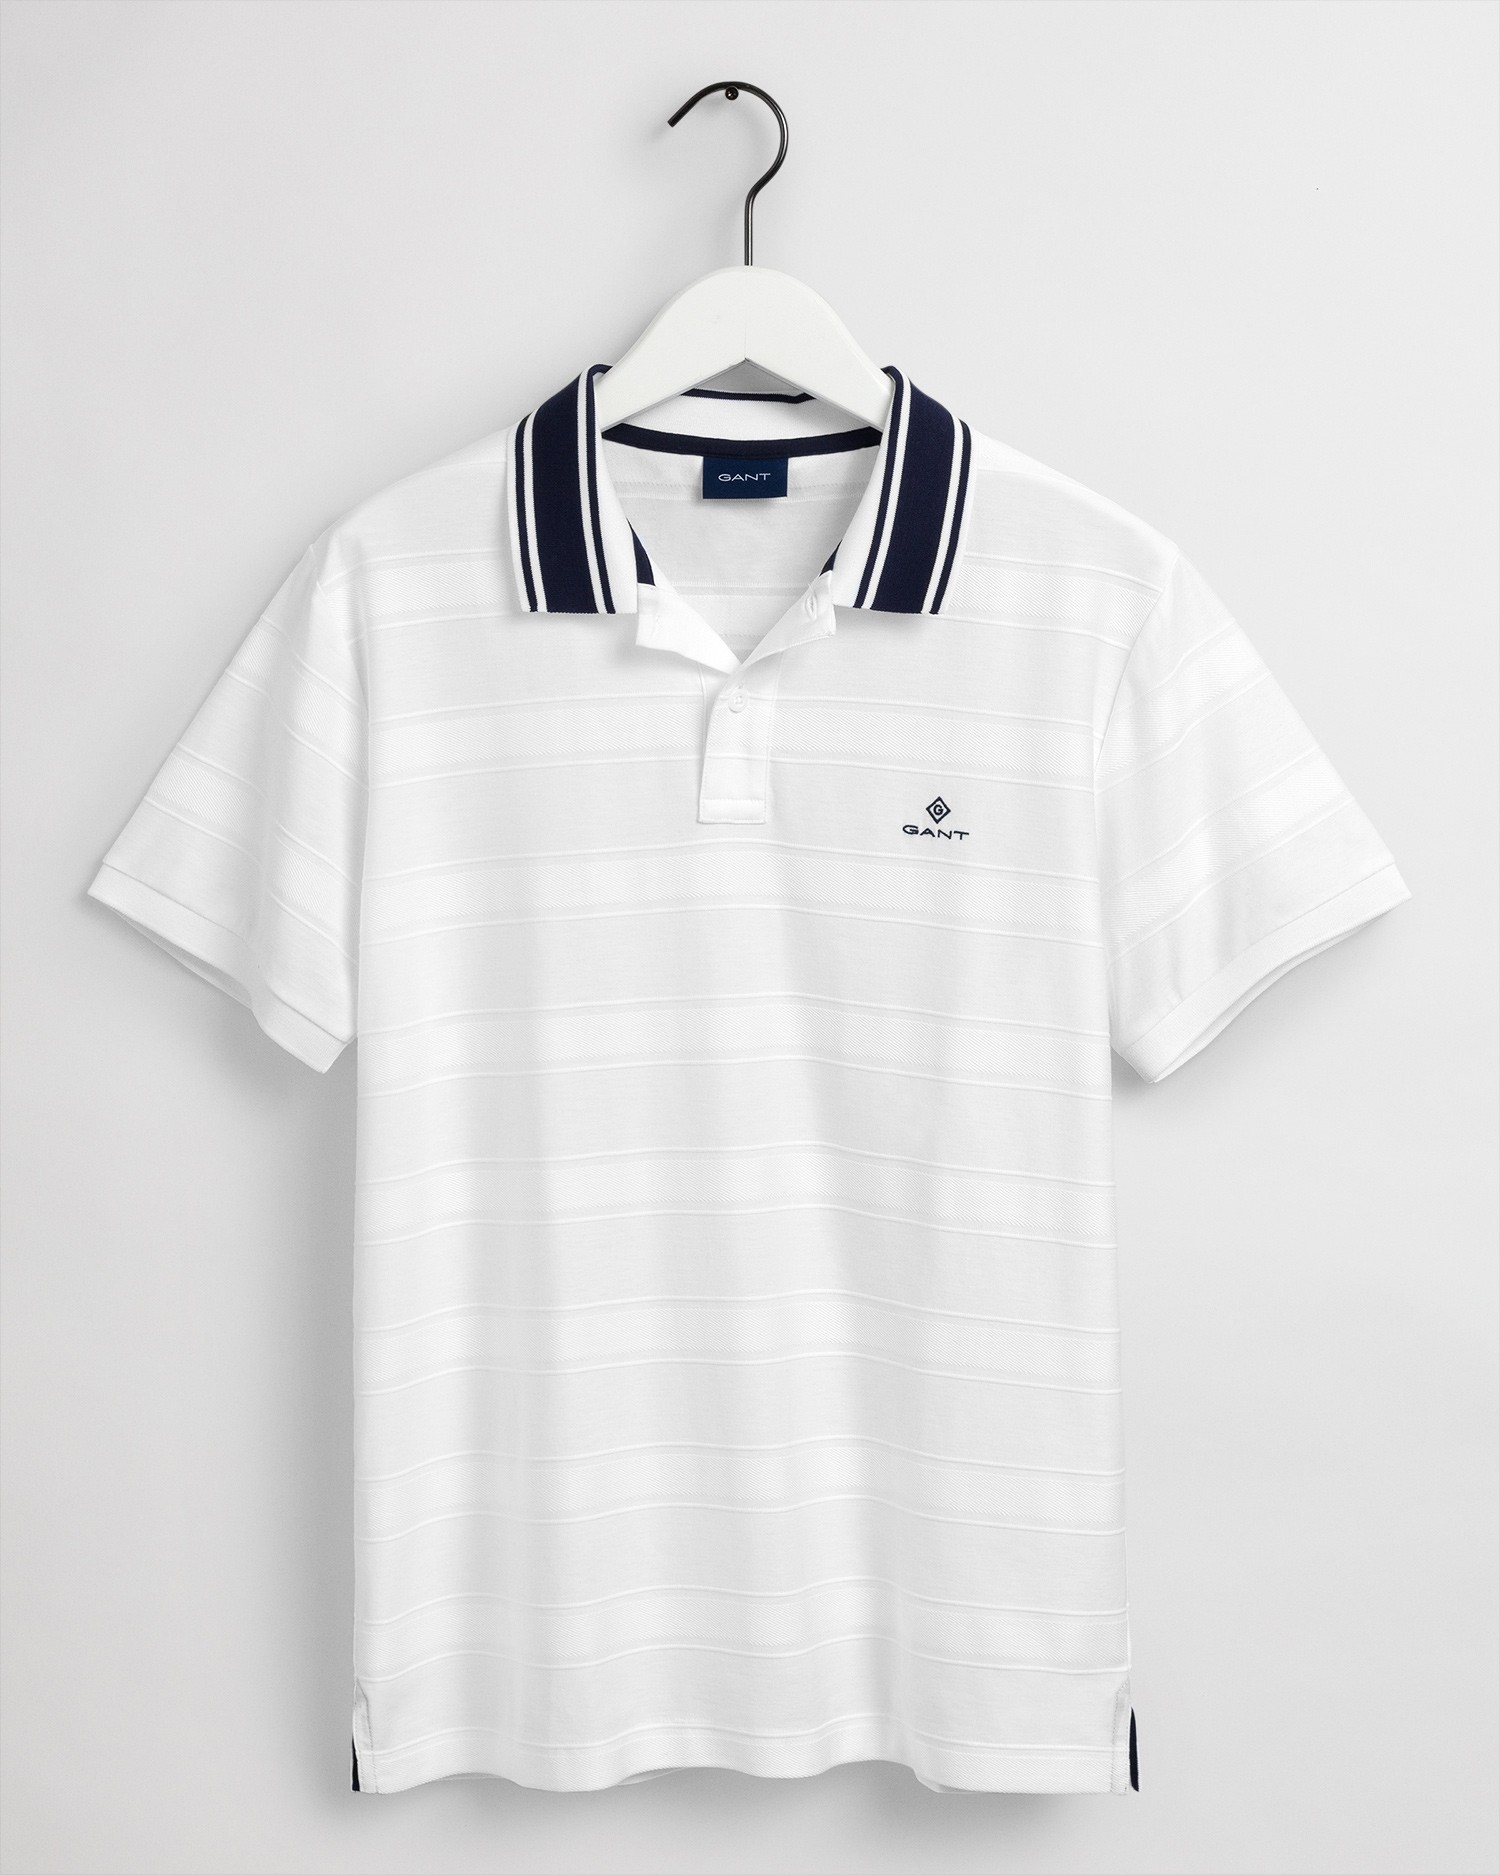 GANT Men's Texture Stripe Short Sleeve Rugger Polo - 2012070